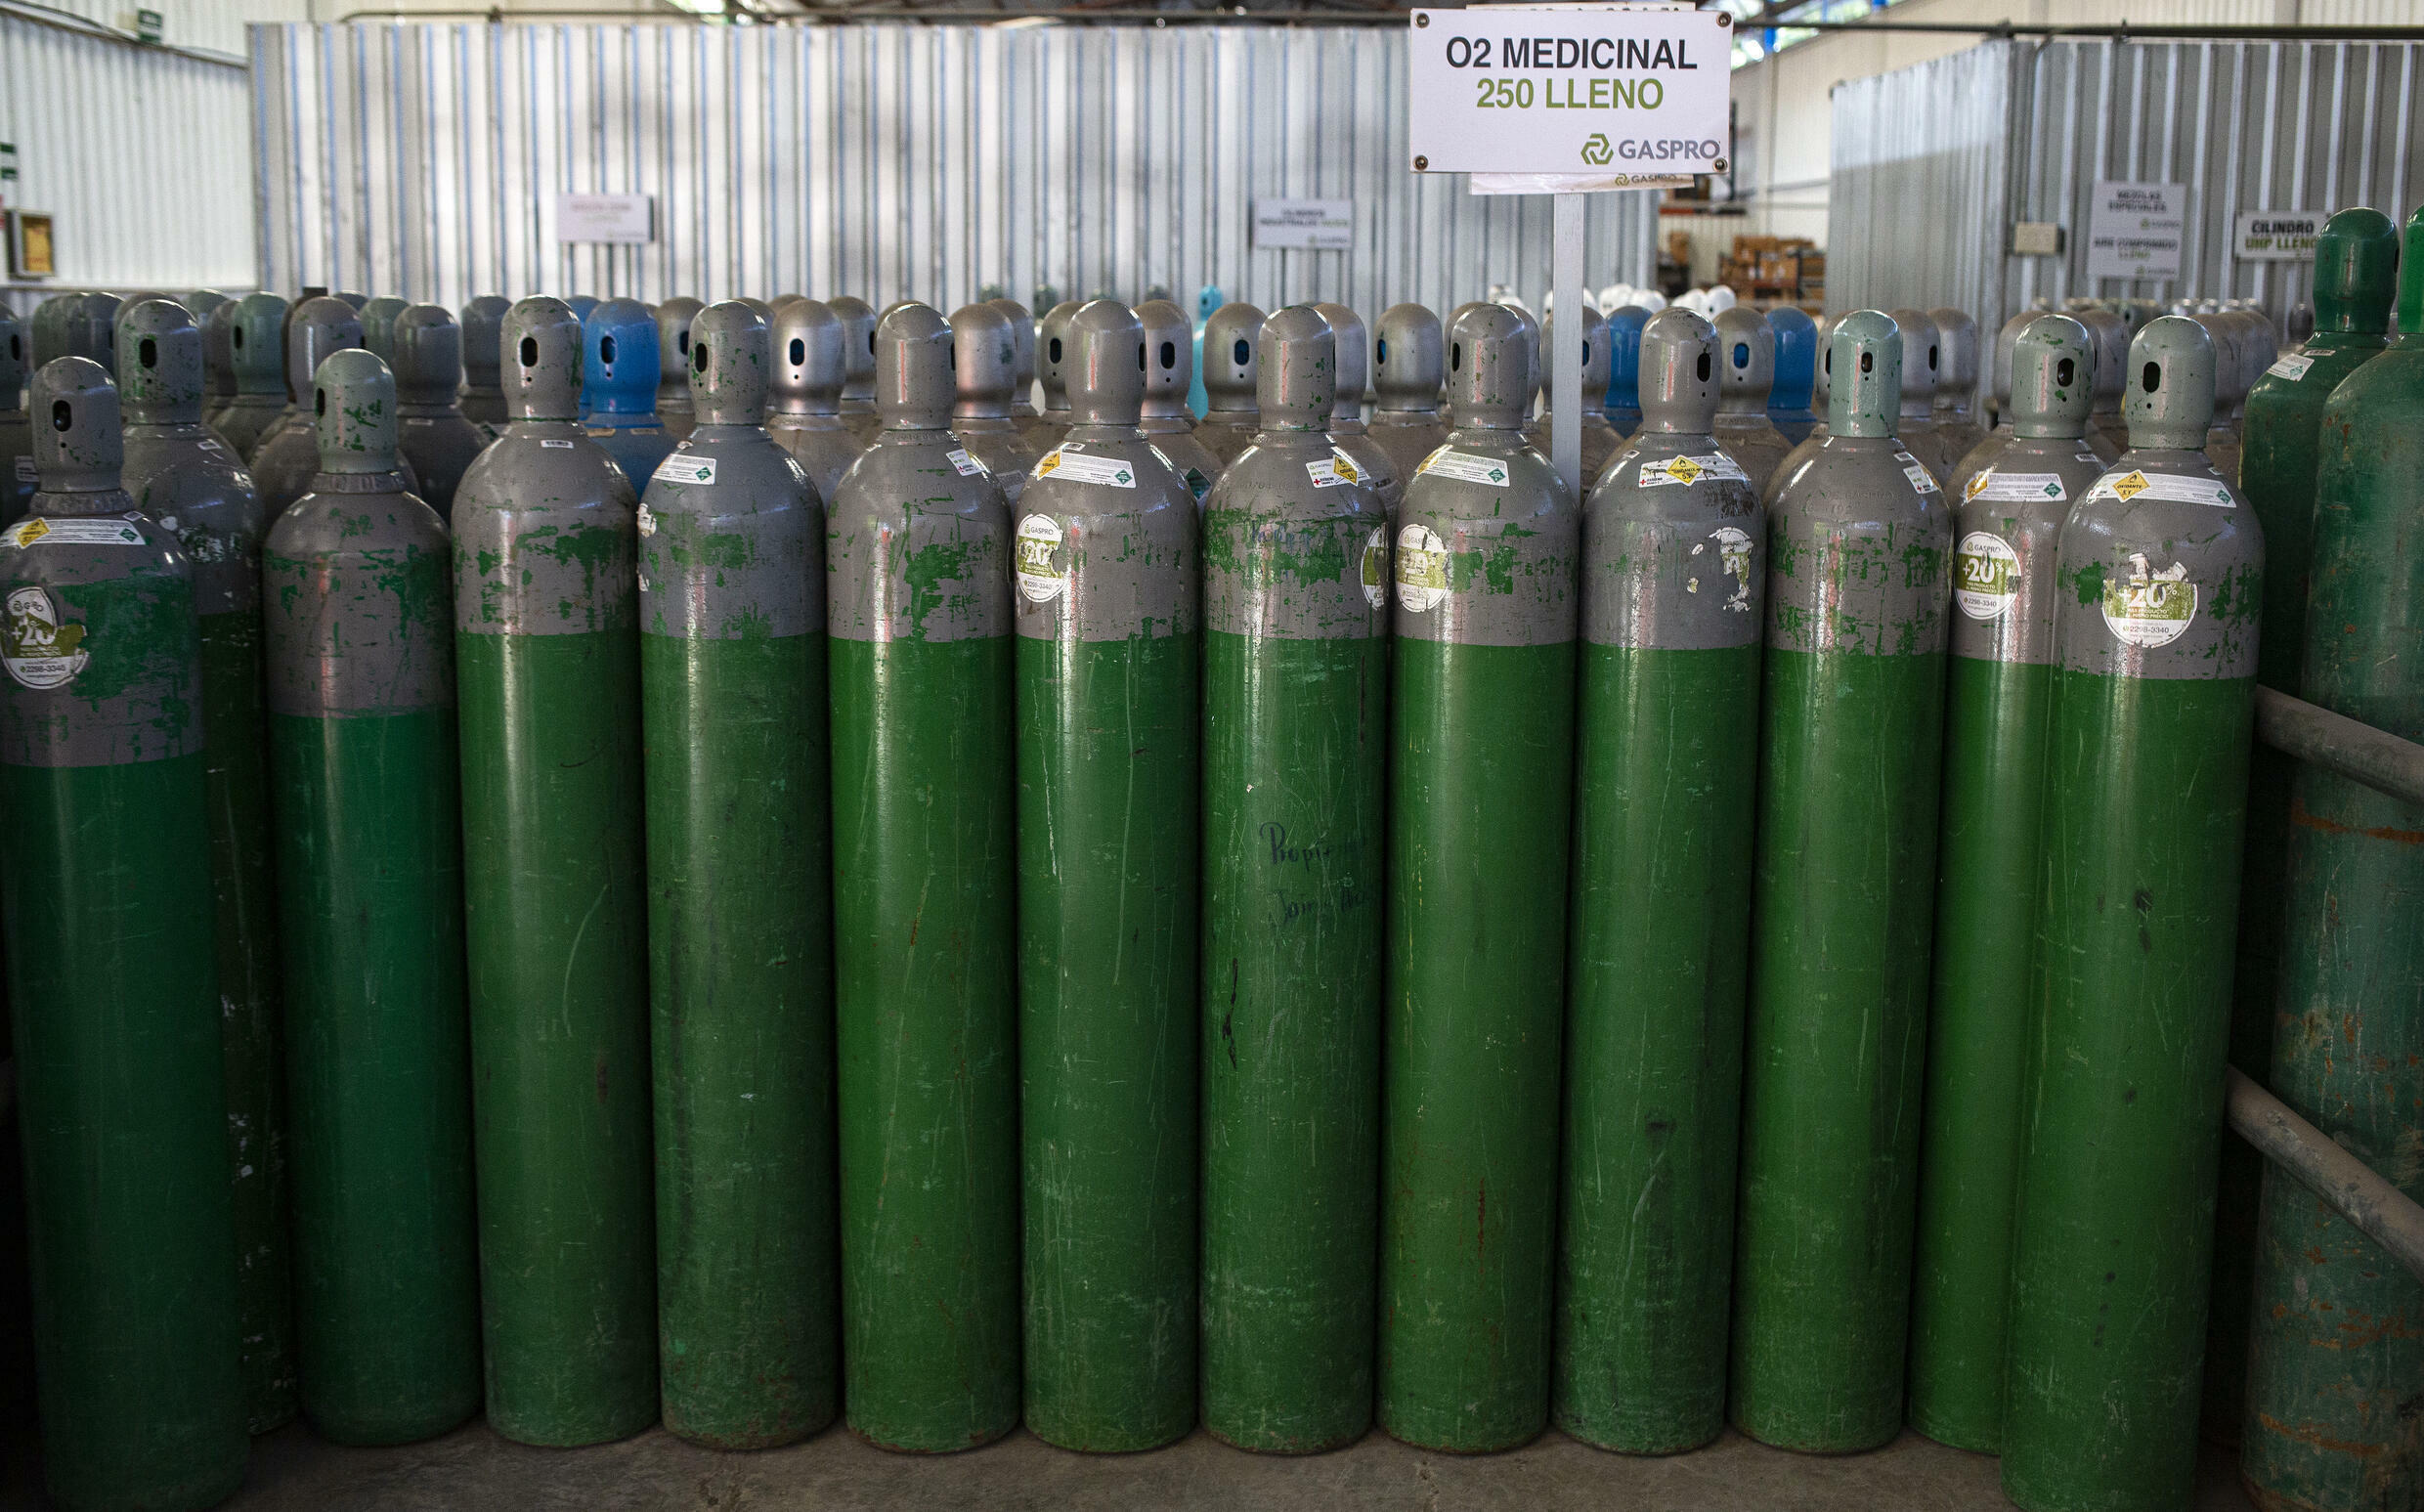 Oxygen tanks have been missing for weeks